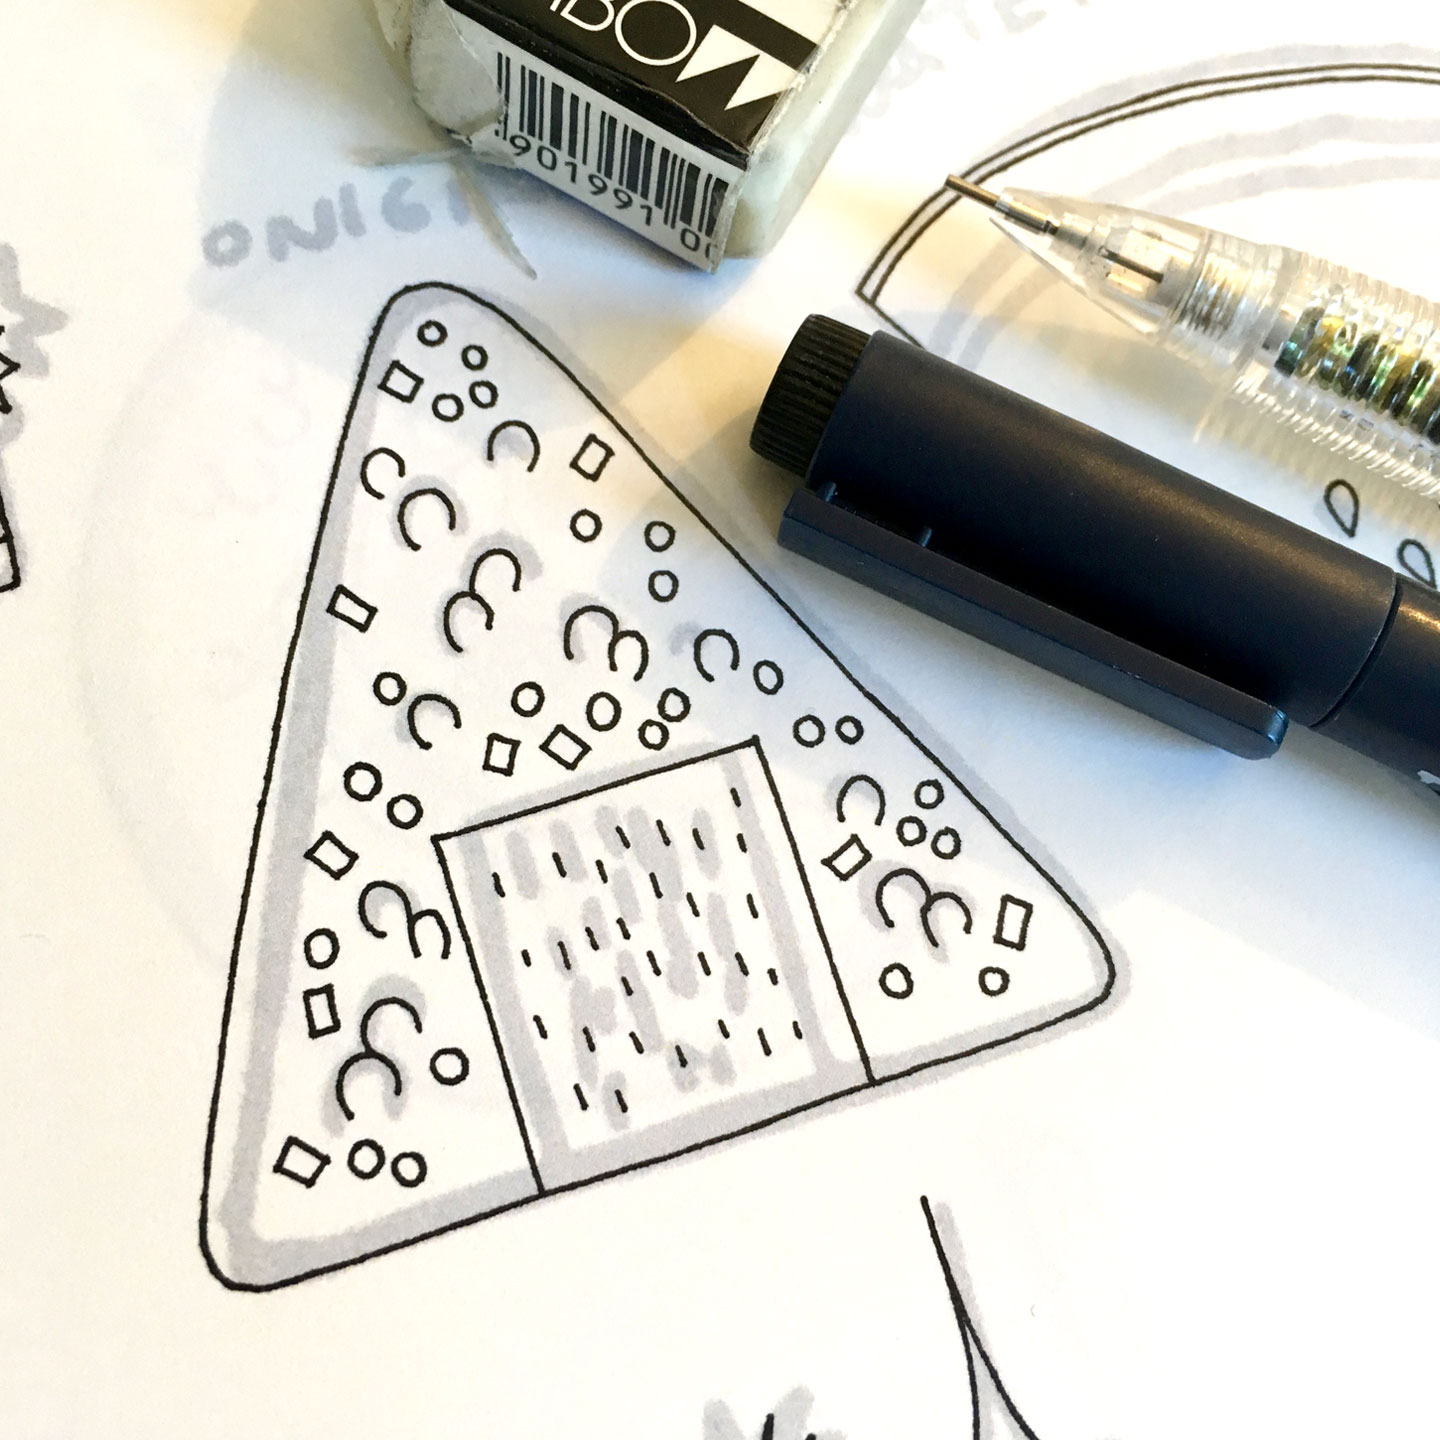 2019-d-tdac-ink-they-draw-and-cook-food-geometry.jpg